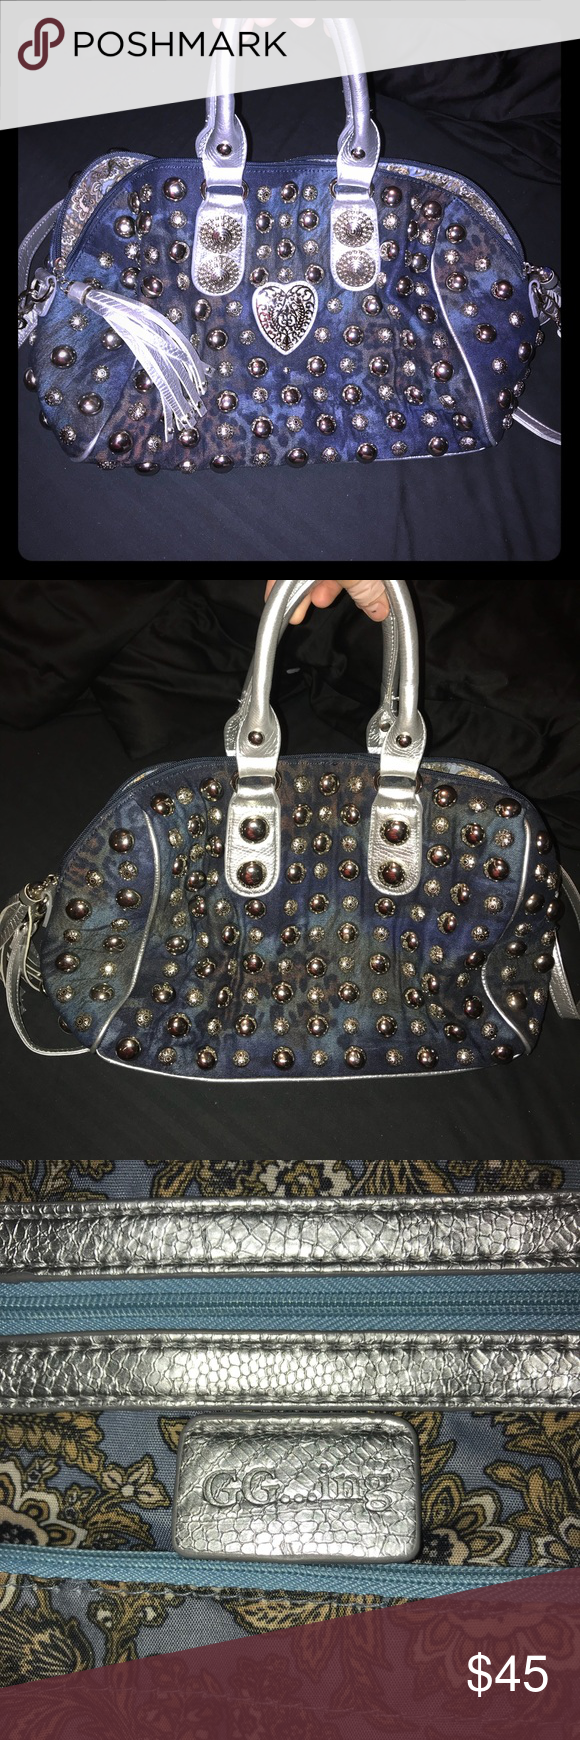 Ing Studded Shoulder To Crossbody Purse Gg